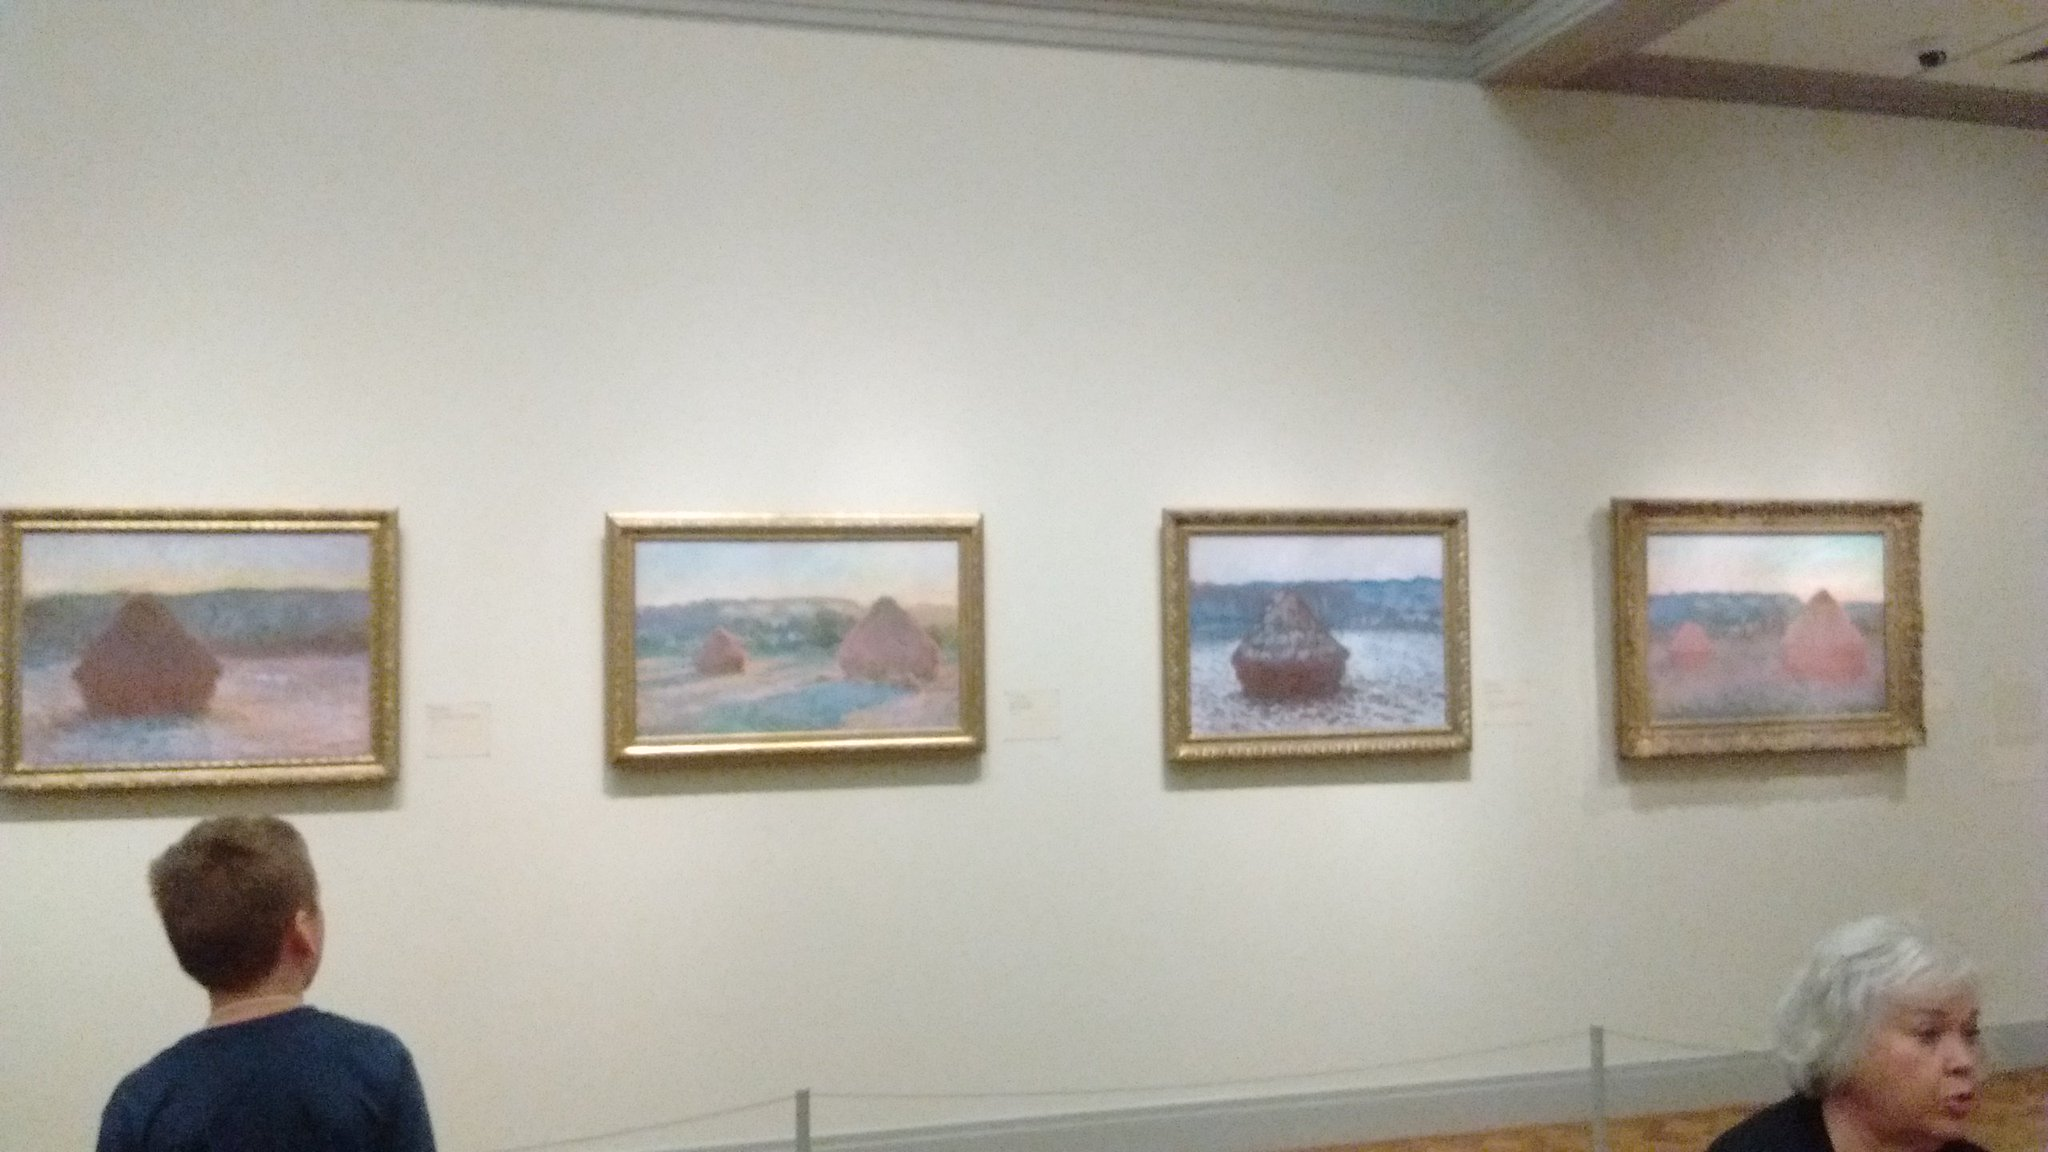 Interesting to see how Monet used the same subject, but showed change with seasons, weather, light, & perspective. @fuglefun #drydenartic https://t.co/SNjnUtIv37